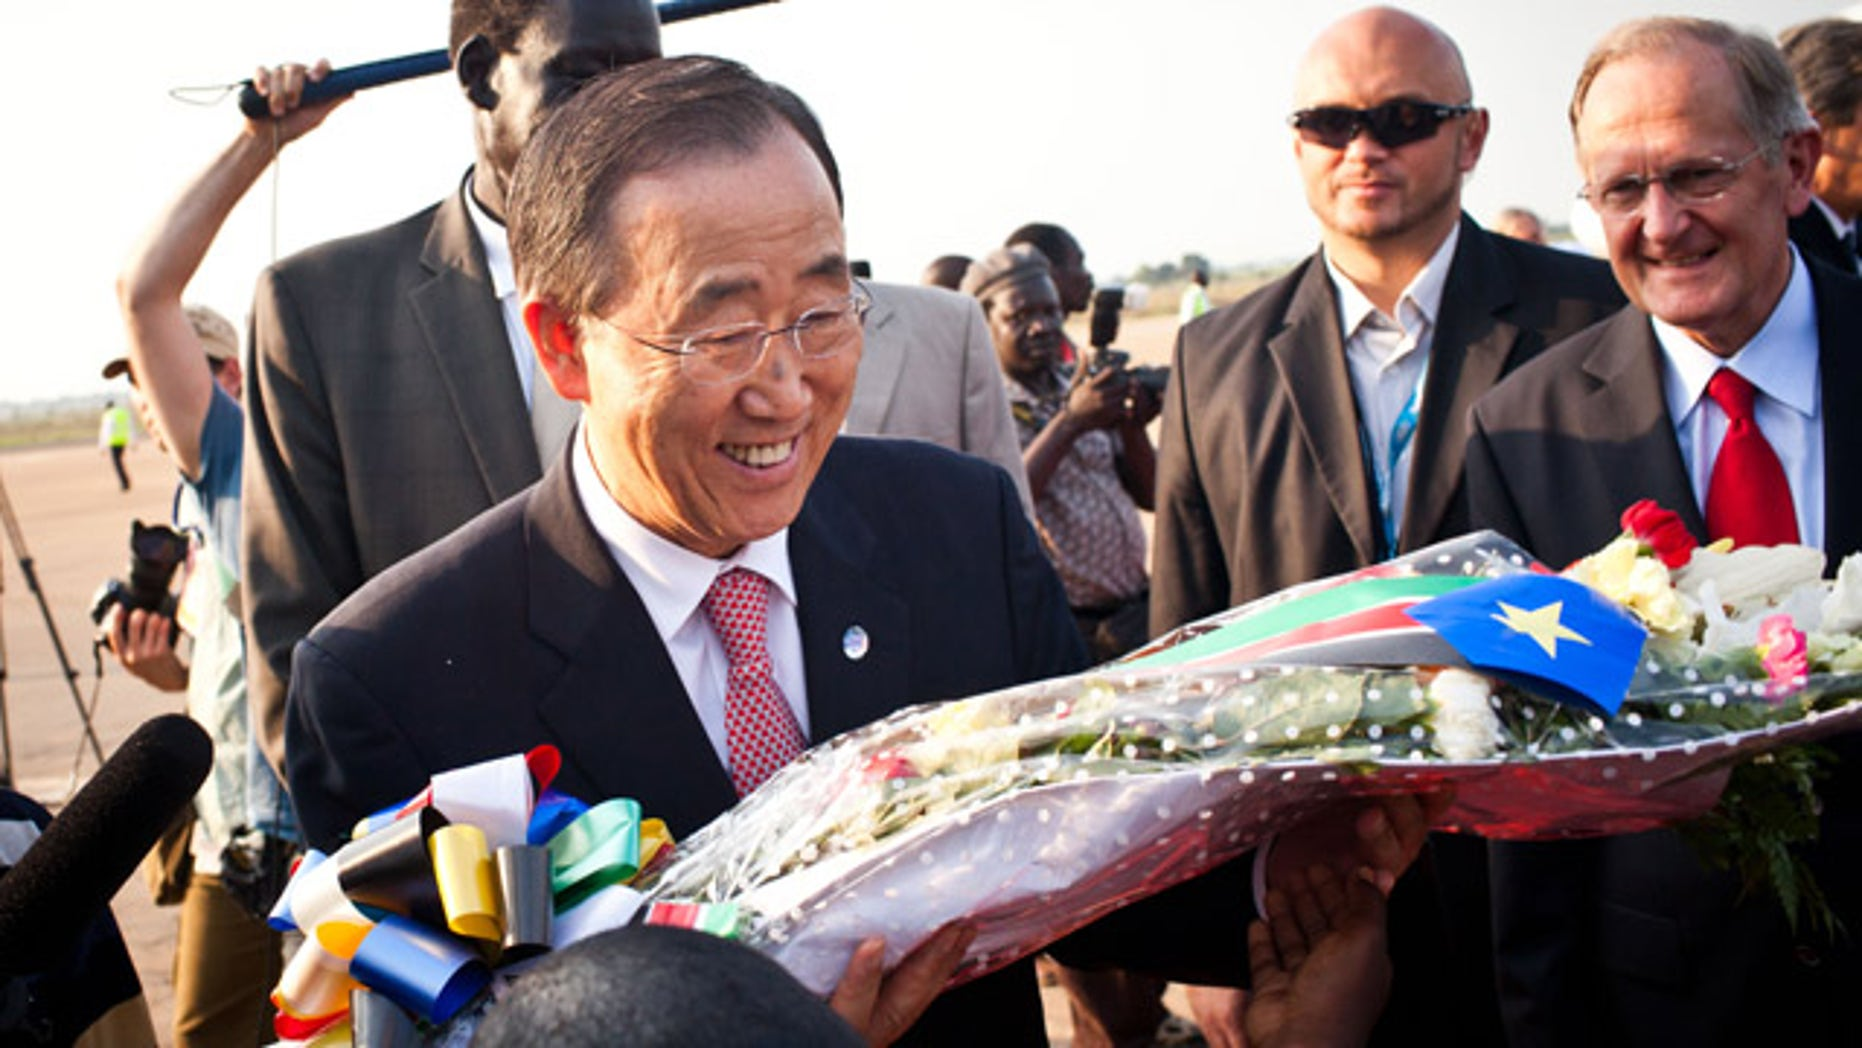 July 9: U.N. Secretary General Ban Ki-moon, along with numerous other foreign dignitaries are arriving in Juba to celebrate the independence of South Sudan.